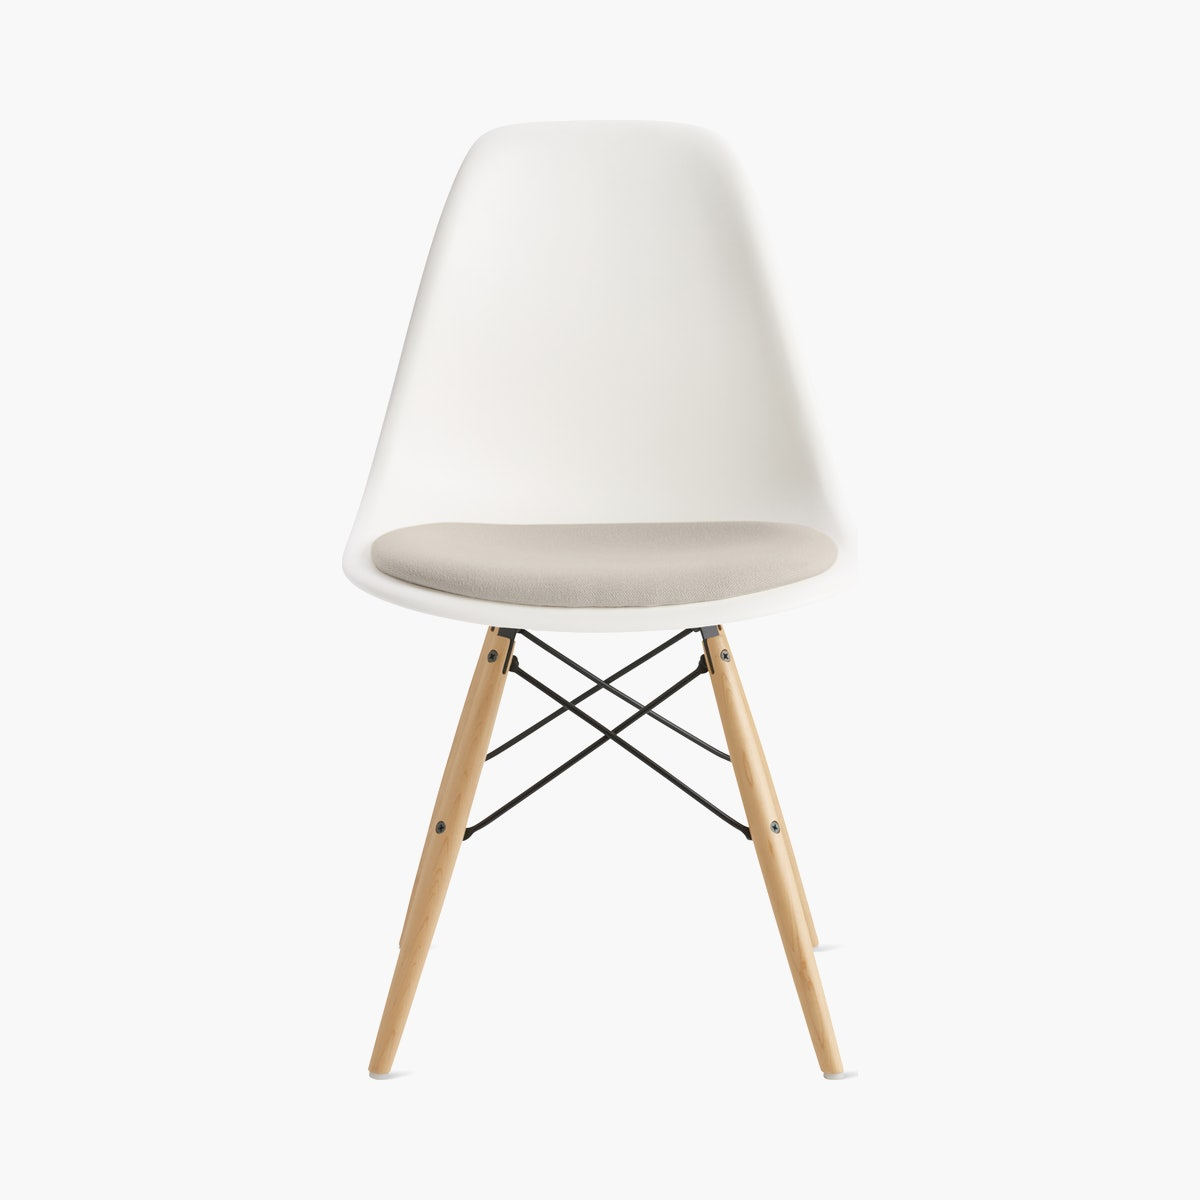 Eames Molded Plastic Side Chair with Seat Pad